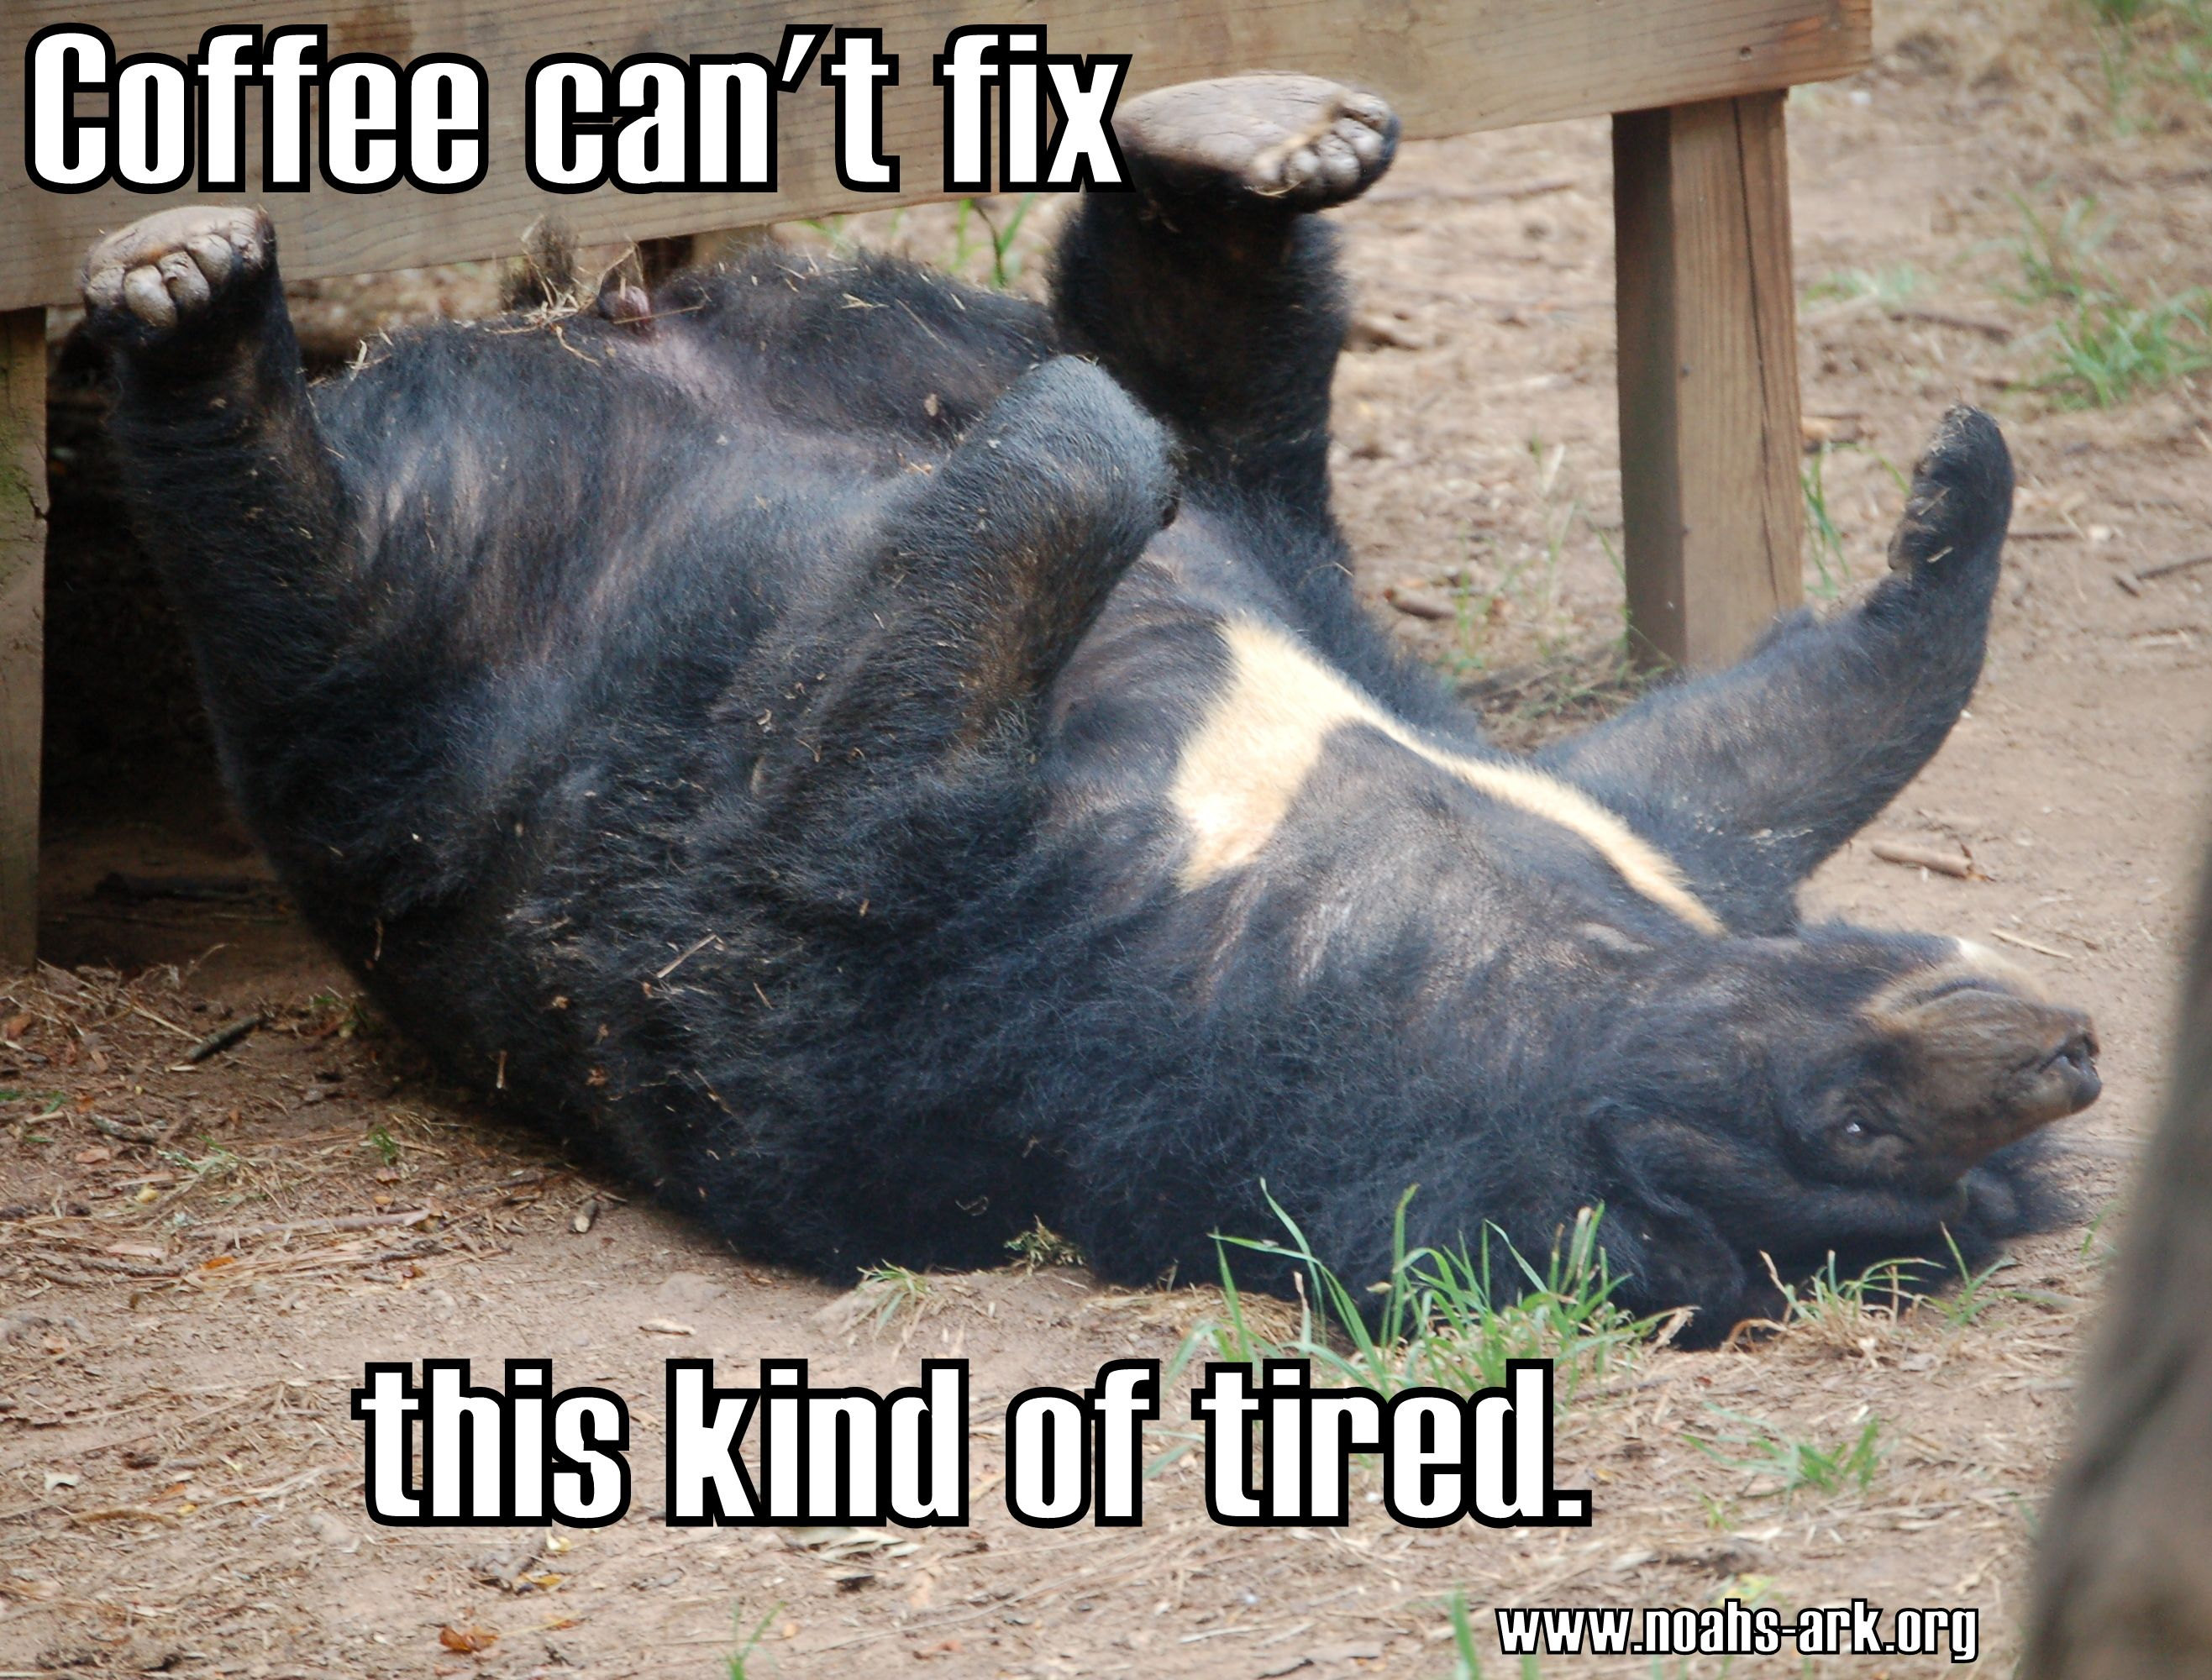 Funny Memes For Lovers : Coffee can't fix this kind of tired www.noahs ark.org #noahsark